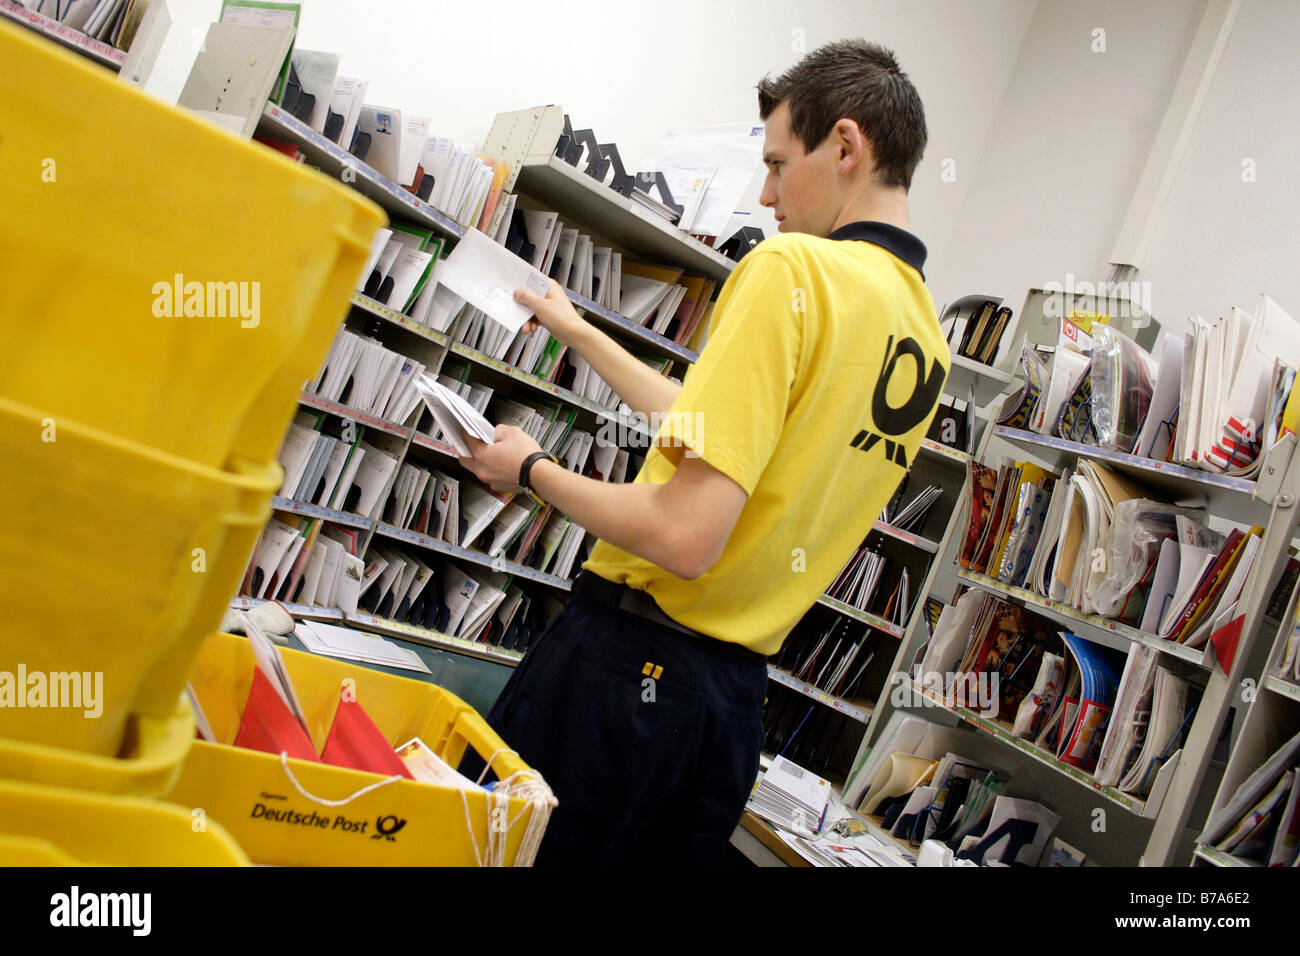 Mailman Delivery Stock Photos & Mailman Delivery Stock ...